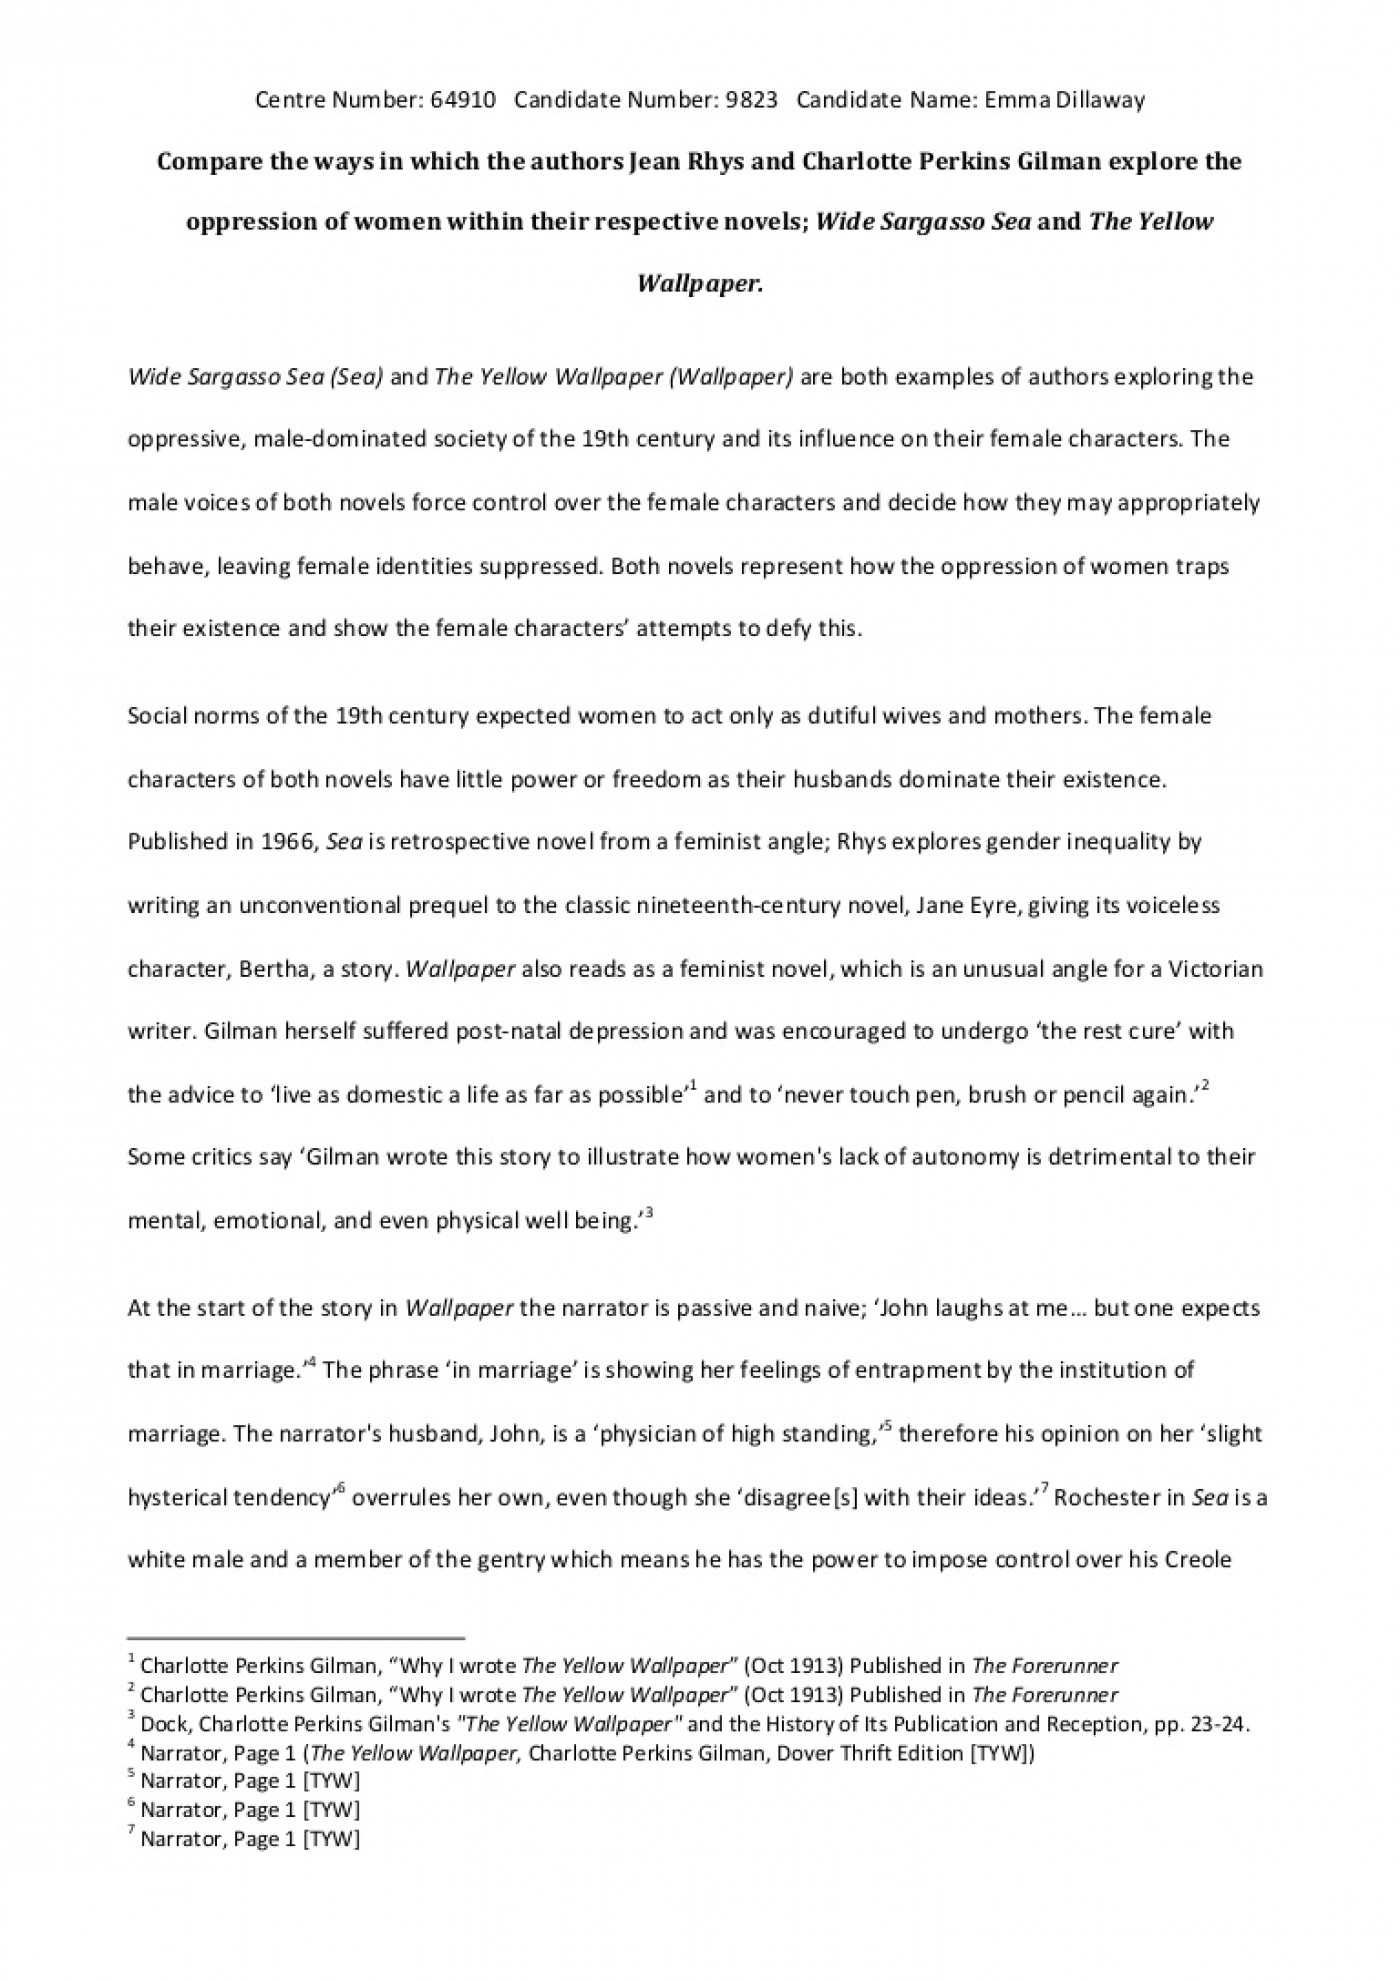 001 The Yellow Wallpaper Essay Phpapp01 Thumbnail 4cbu003d1368715597 Top Feminism Questions Conclusion 1400